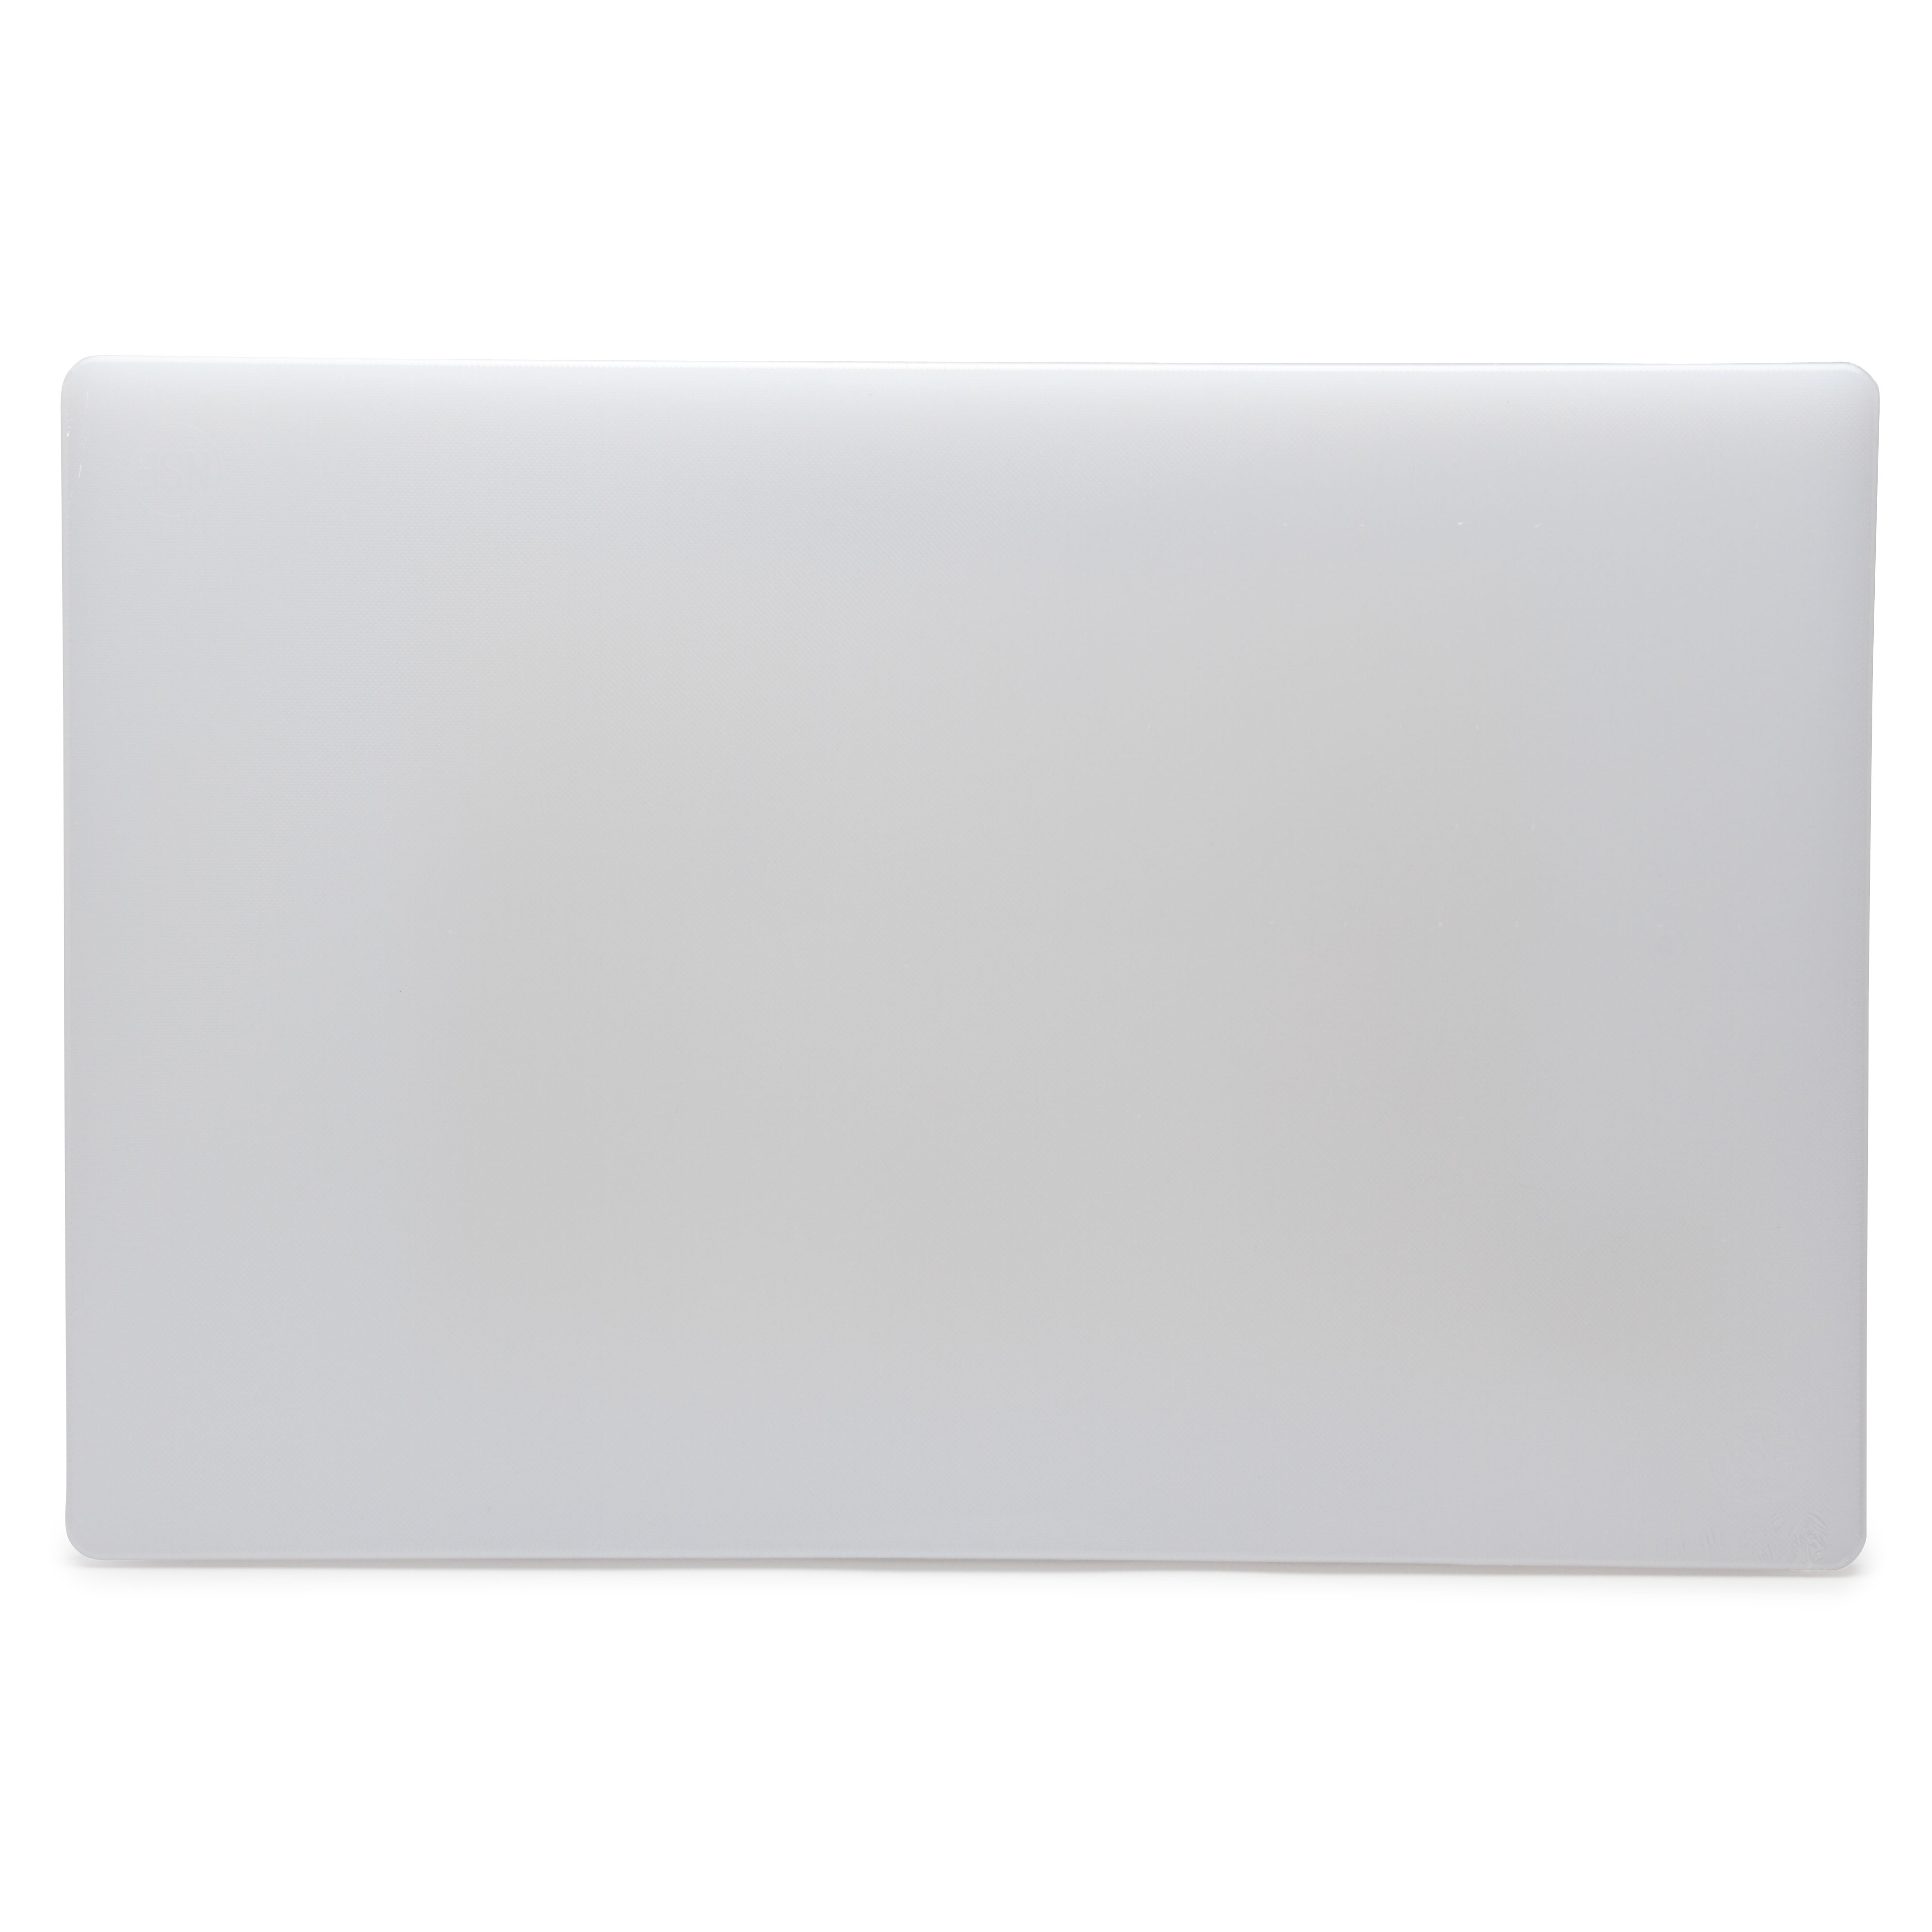 Royal Industries ROY CB 1824 WHT cutting board, plastic